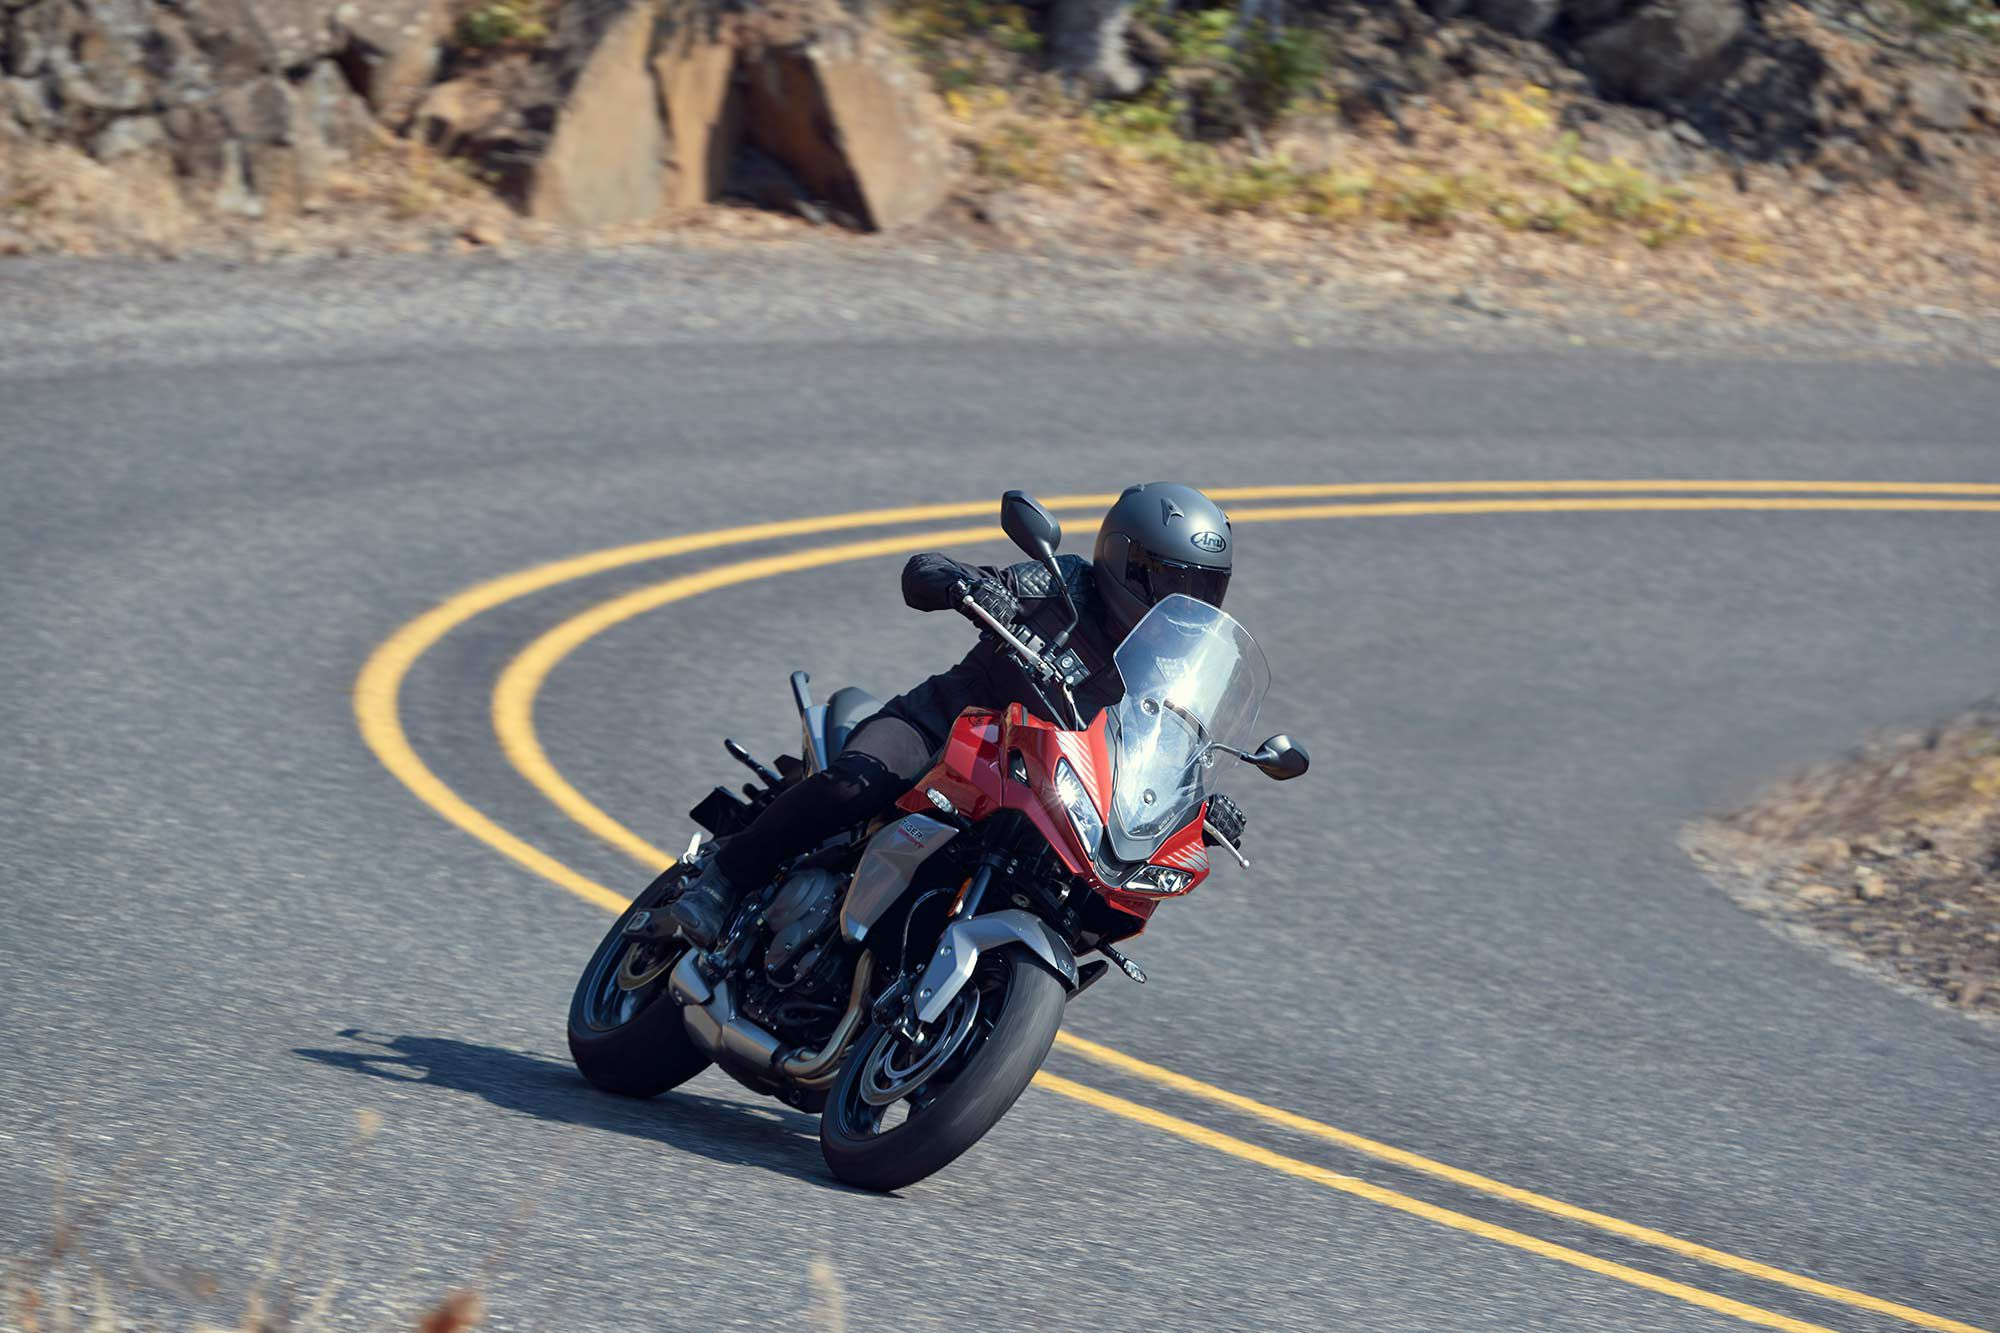 The new Tiger Sport 660 hedges its bet that Triumph's triple engine performance will give it an edge on the competition with its combination of torque, midrange performance, and peppy top-end power.